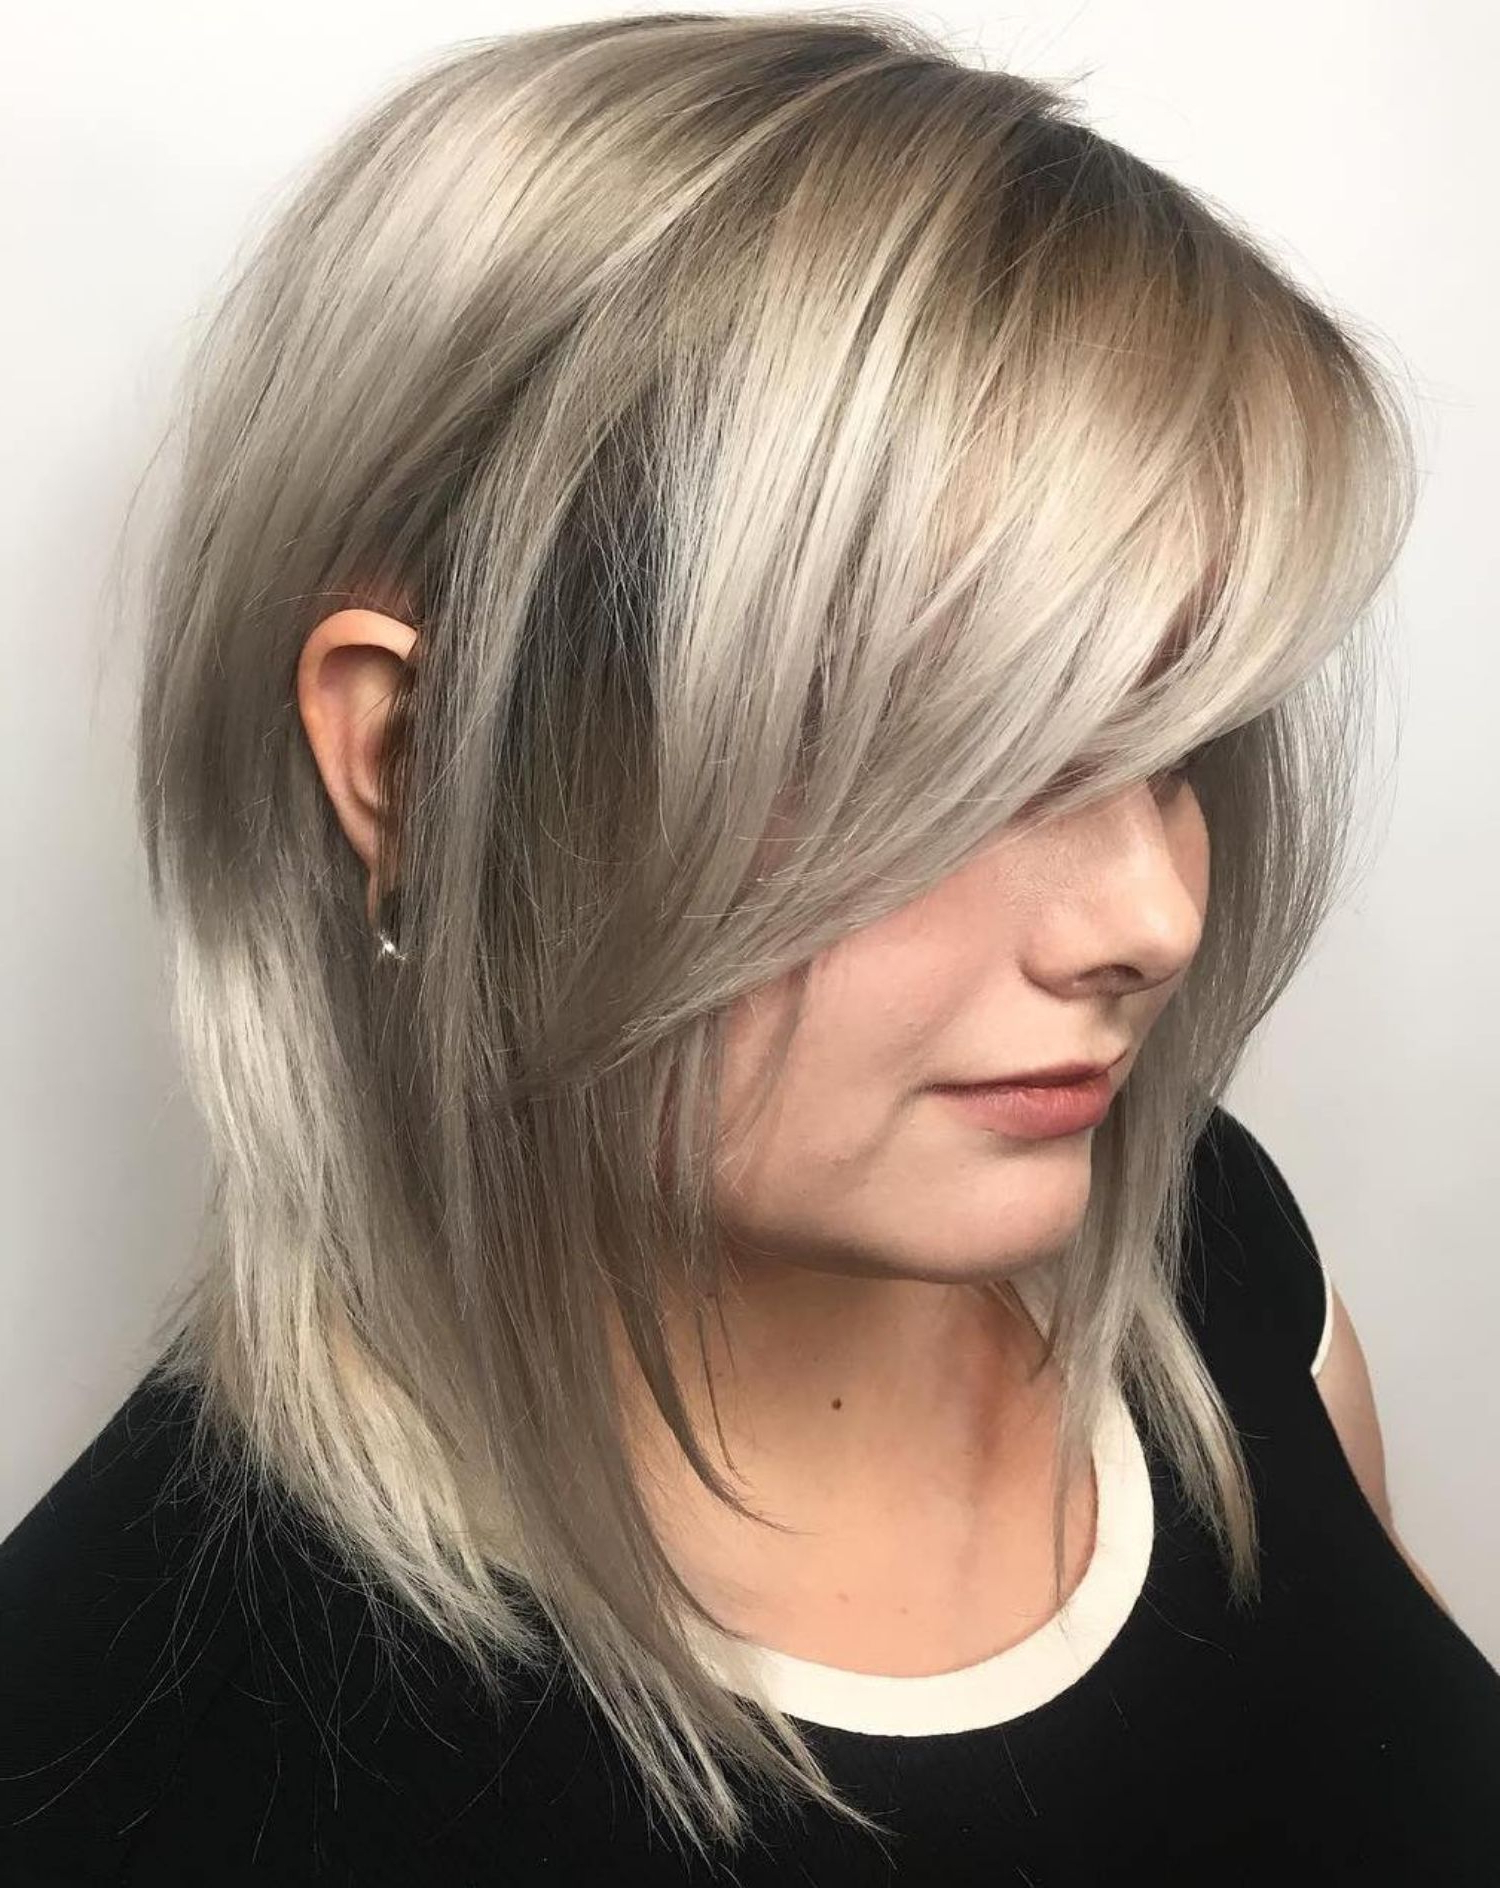 2017 Long Feathered Bangs Hairstyles With Inverted Bob In Pin On Hair (View 6 of 20)